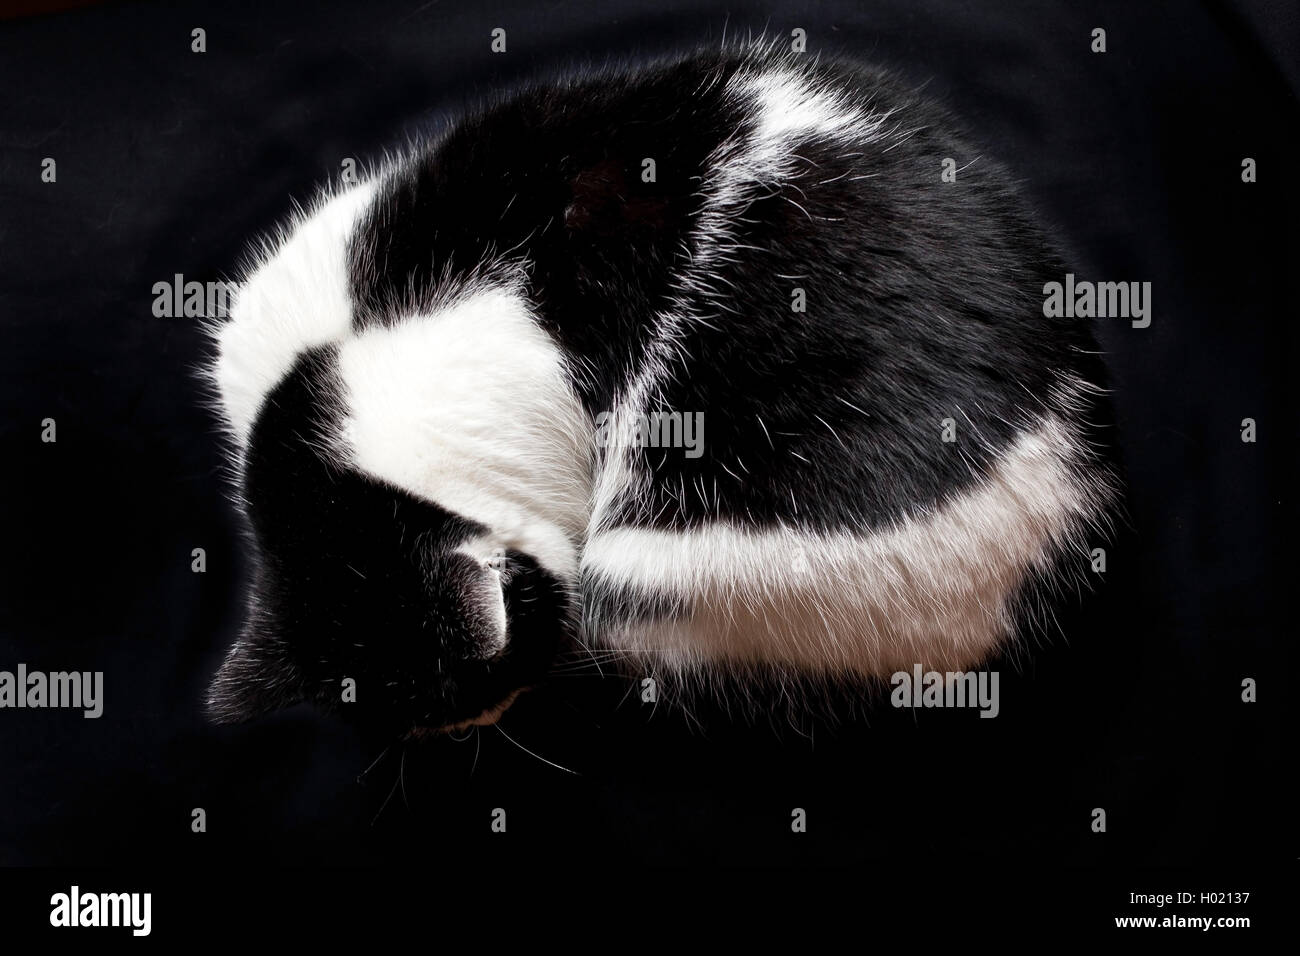 domestic cat, house cat (Felis silvestris f. catus), coiled up black-and-white house cat Stock Photo